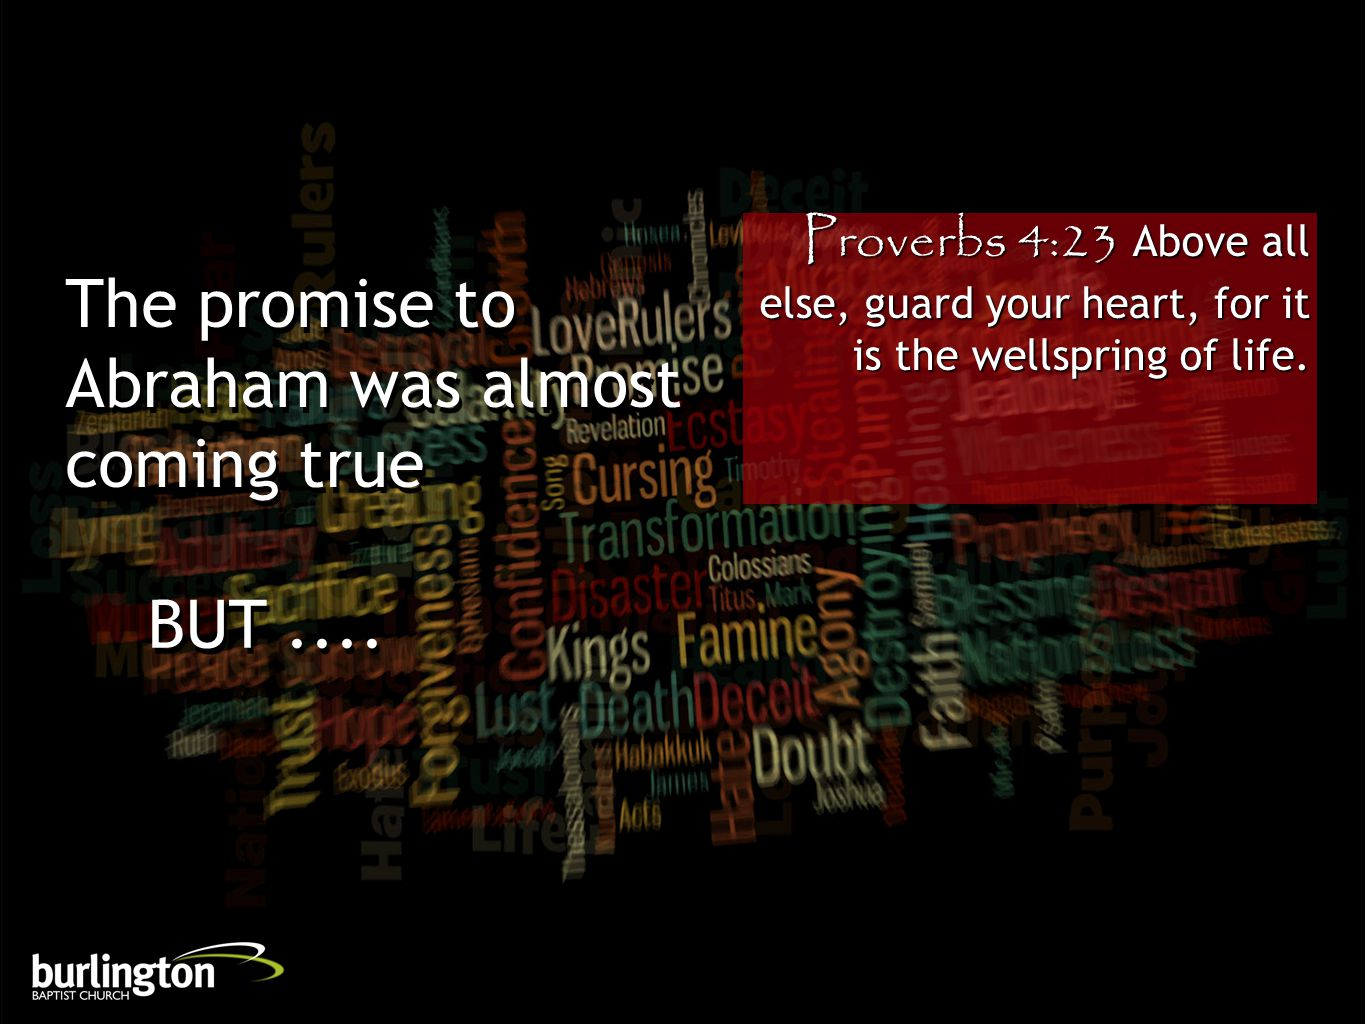 Proverbs 4:23 Above all else, guard your heart, for it is the wellspring of life. The promise to Abraham was almost coming true BUT....